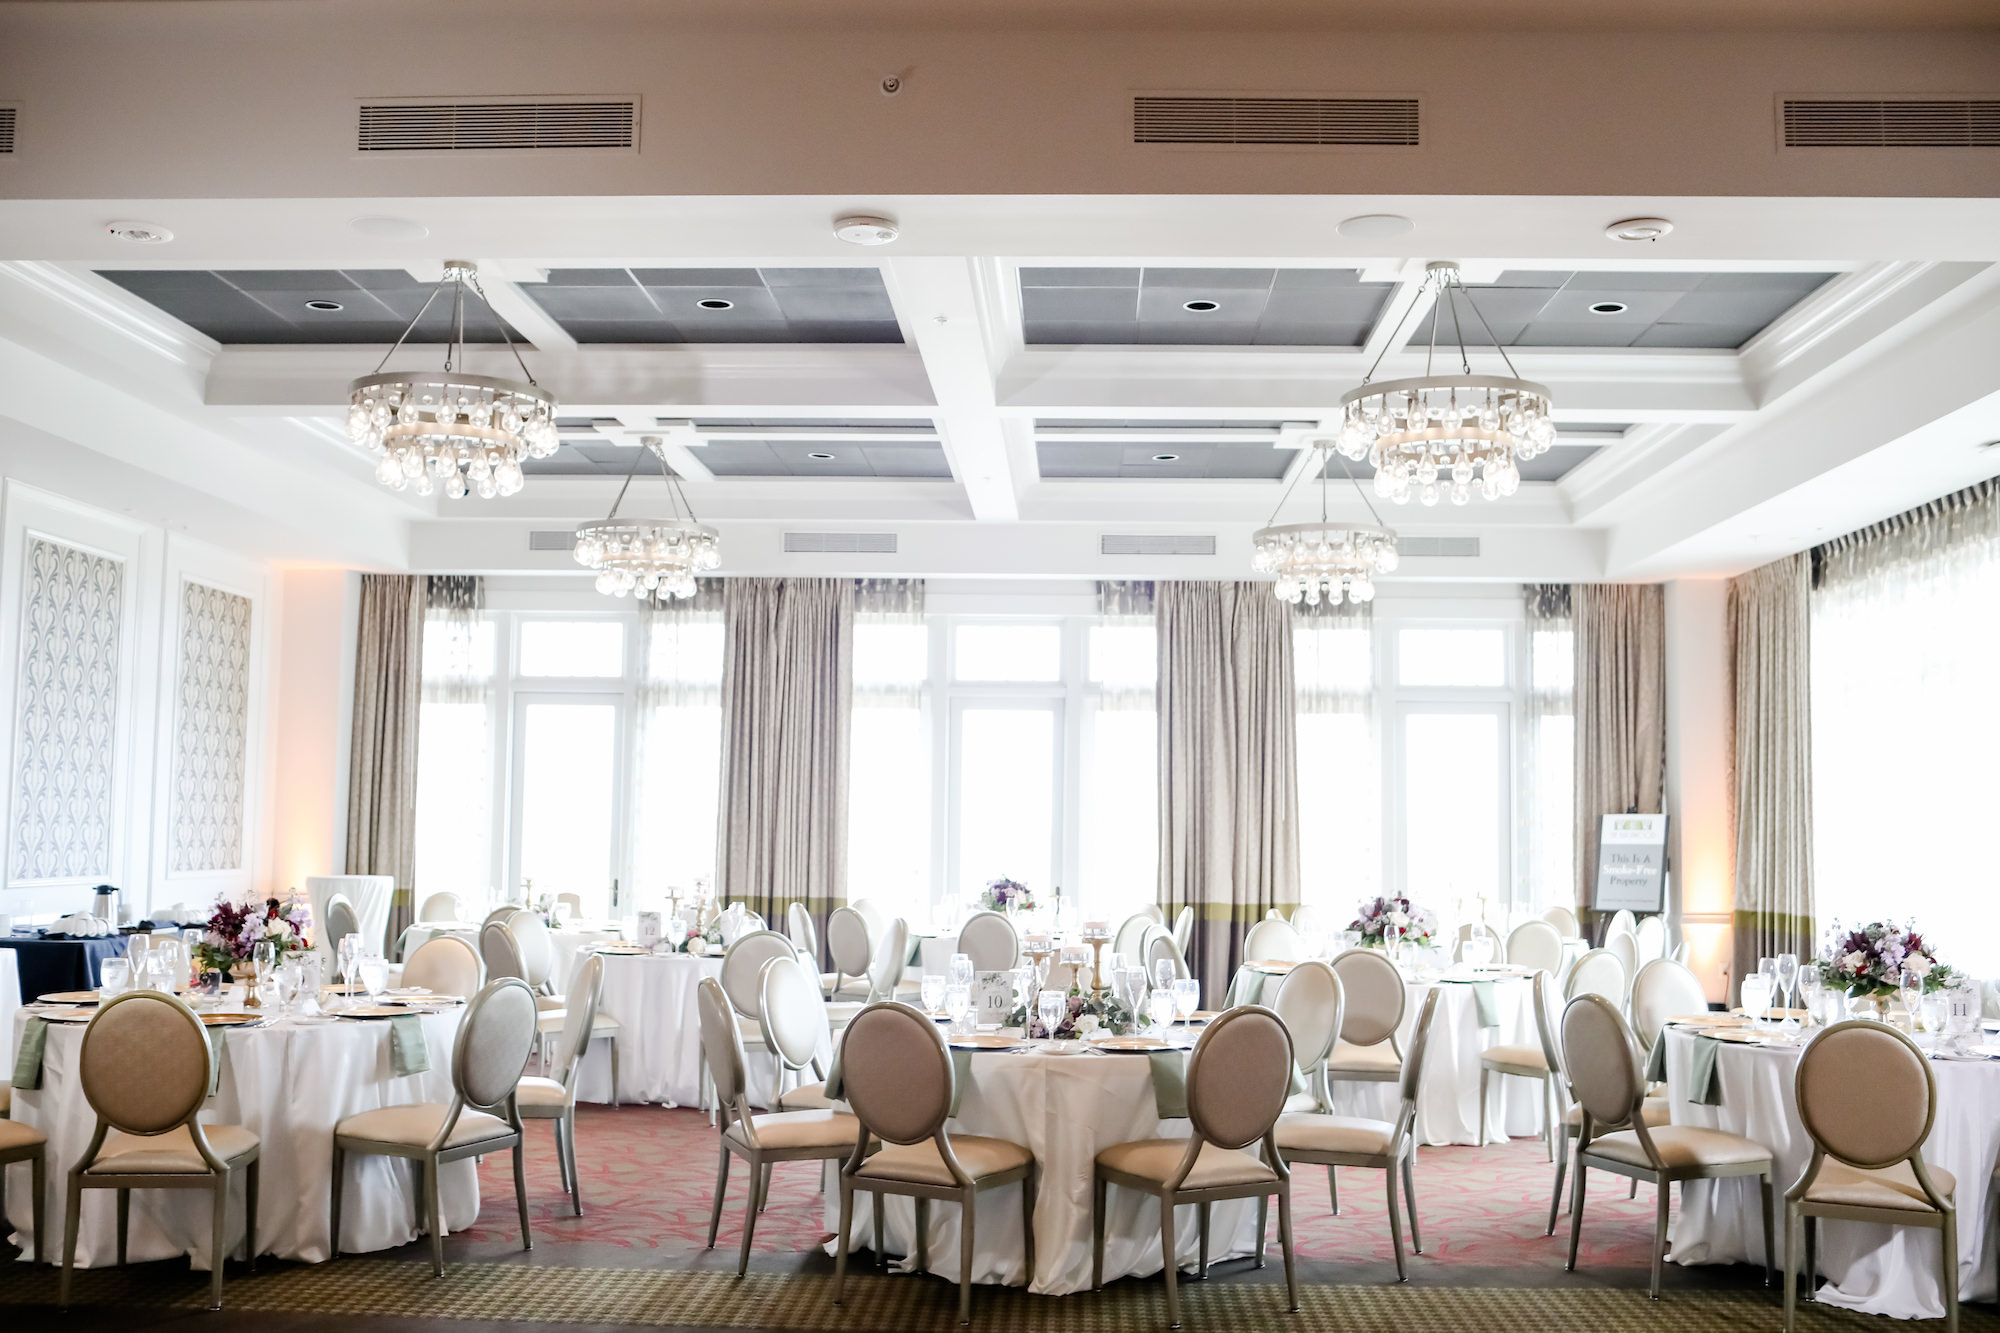 Classic Spring Time Inspired Wedding Reception in Chic Ballroom with Natural Lighting, Round Tables with White Linens, Modern Lighting Fixtures and Chandeliers   Florida Boutique Hotel The Birchwood   Tampa Bay Wedding Photographer Lifelong Photography Studio   Planner Blue Skies Weddings and Events